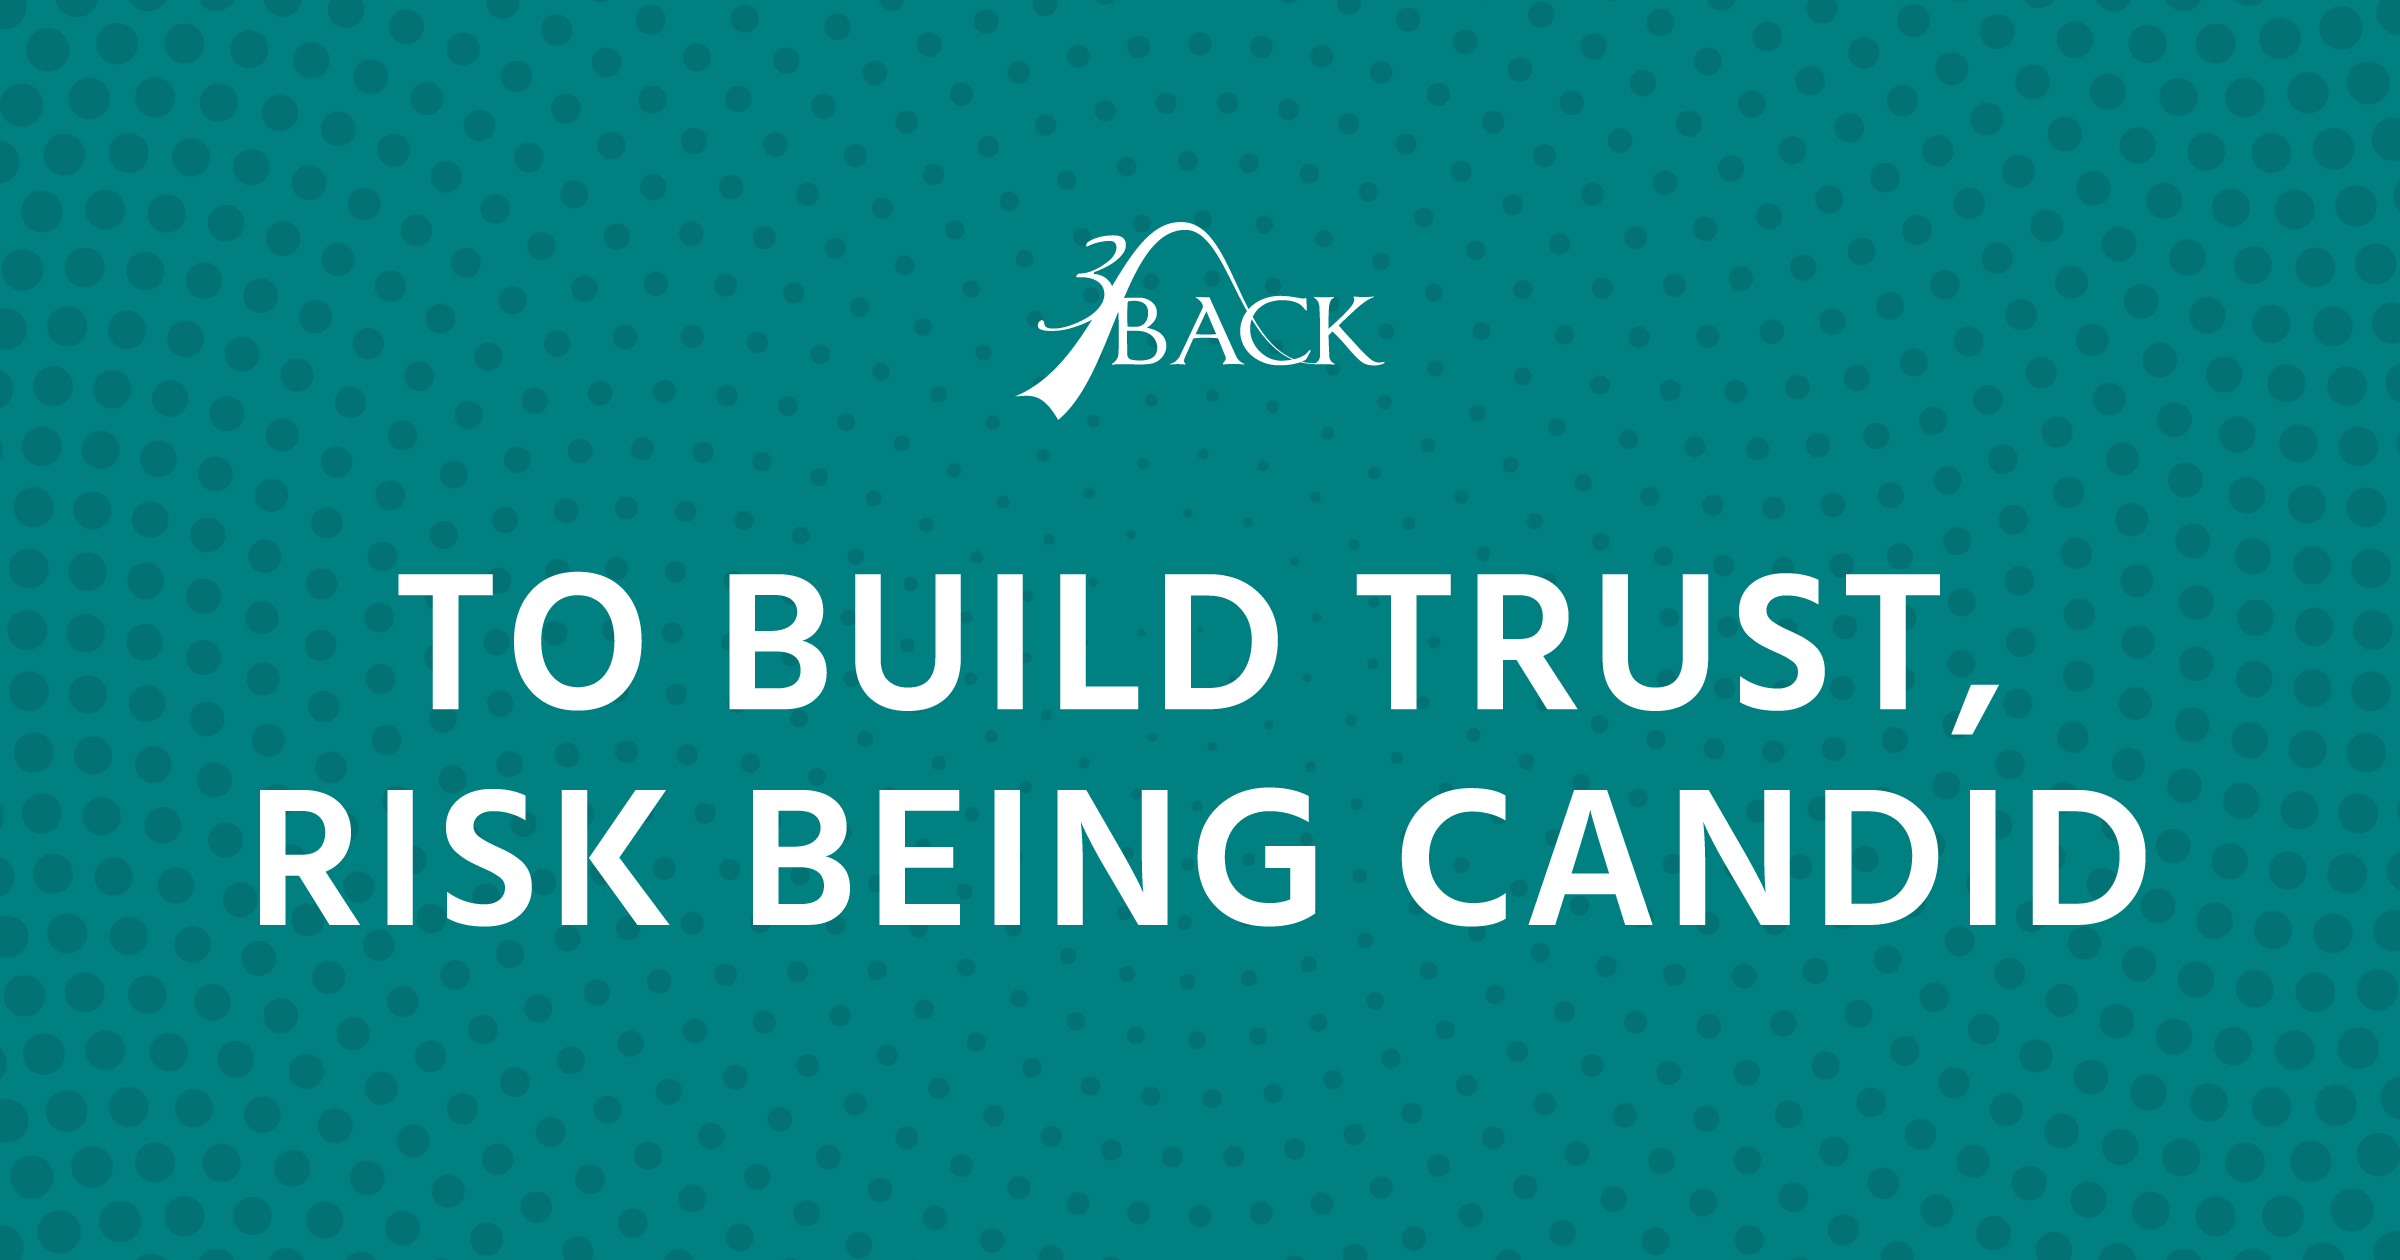 3Back-To-Build-Trust-Risk-Being-Candid